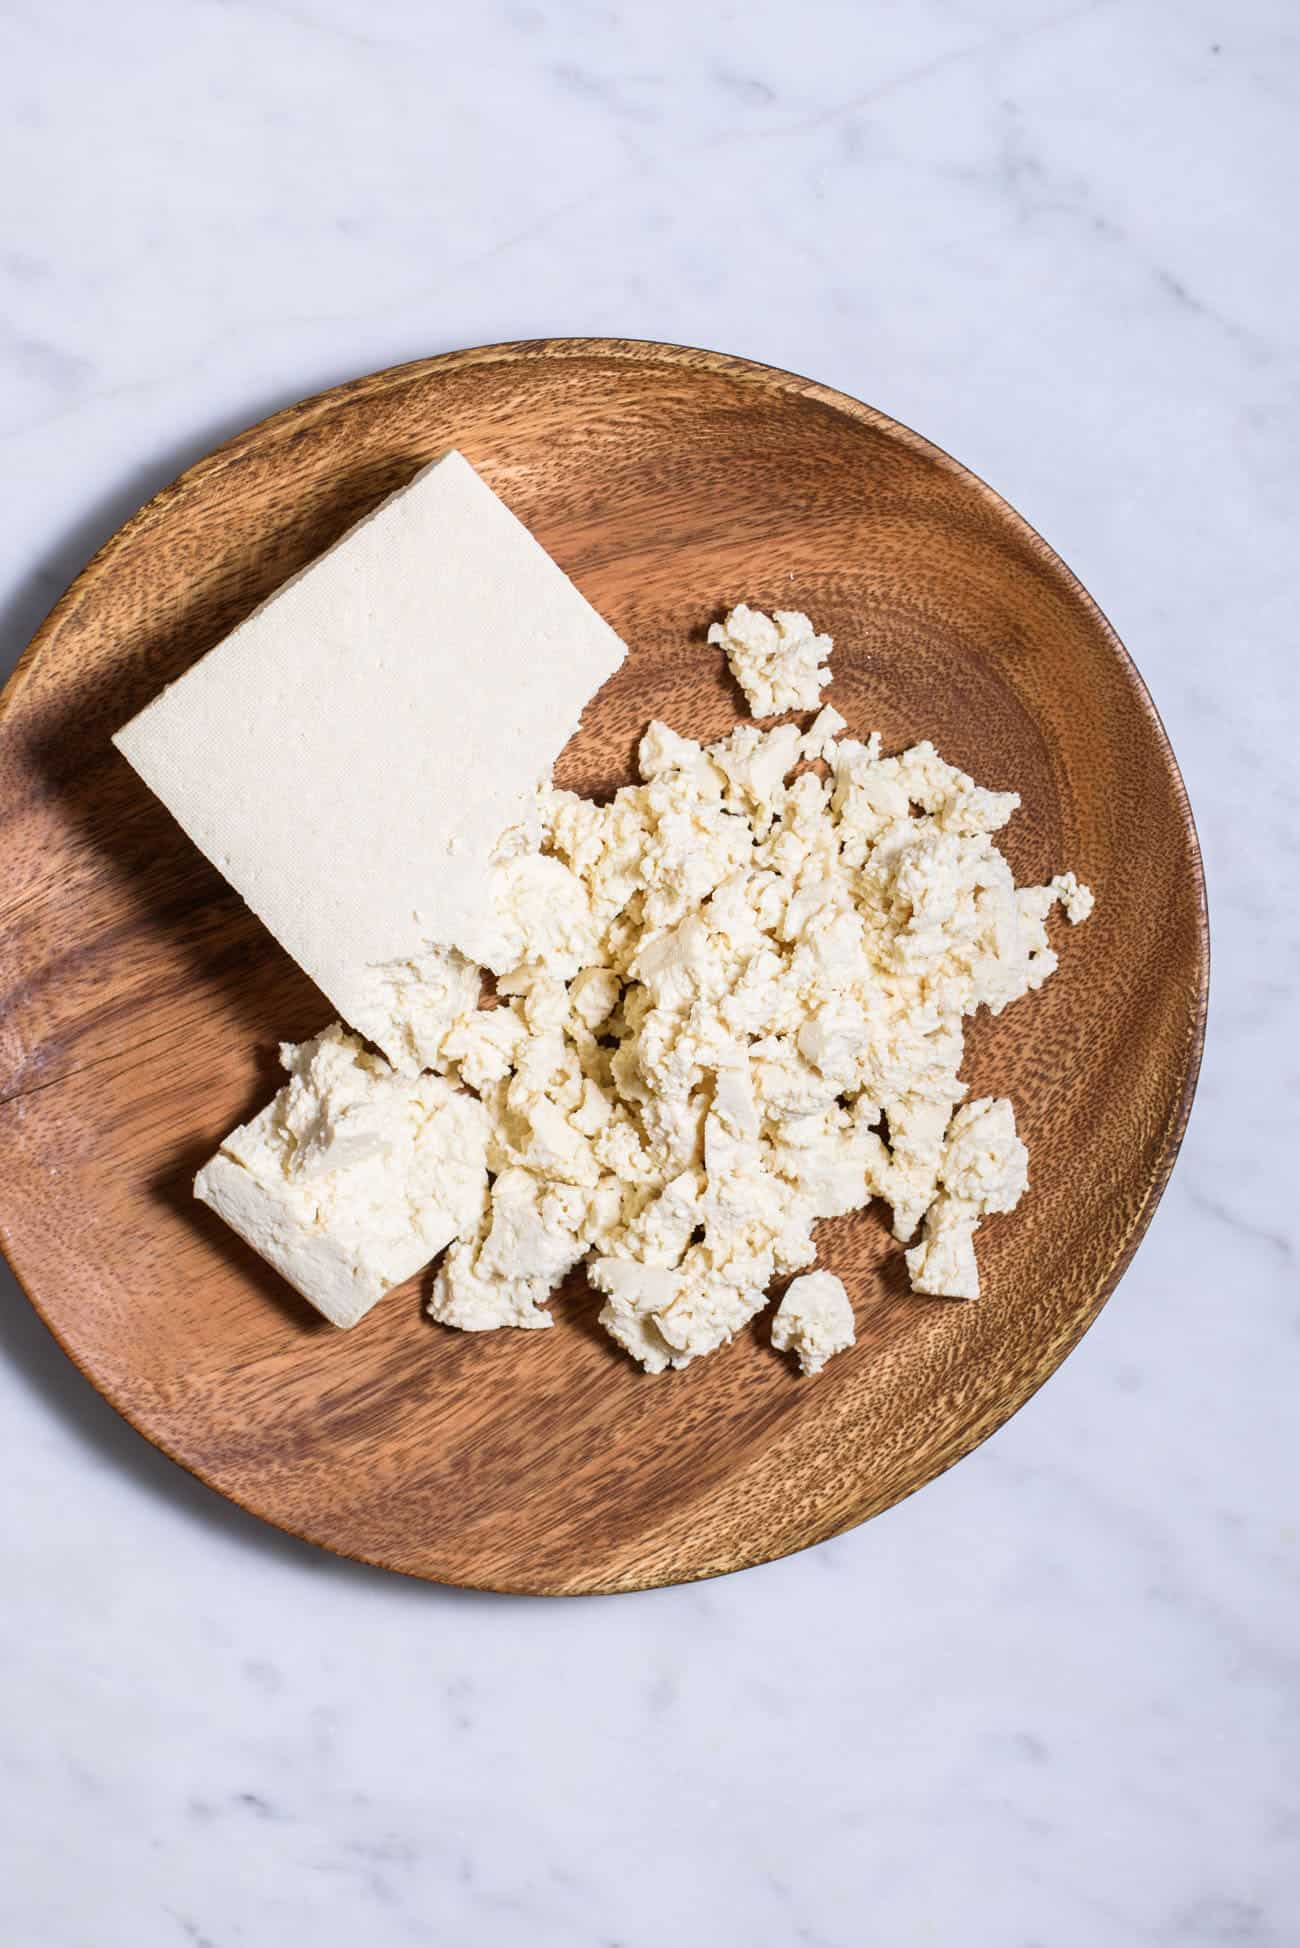 Crumbled tofu on a wooden plate